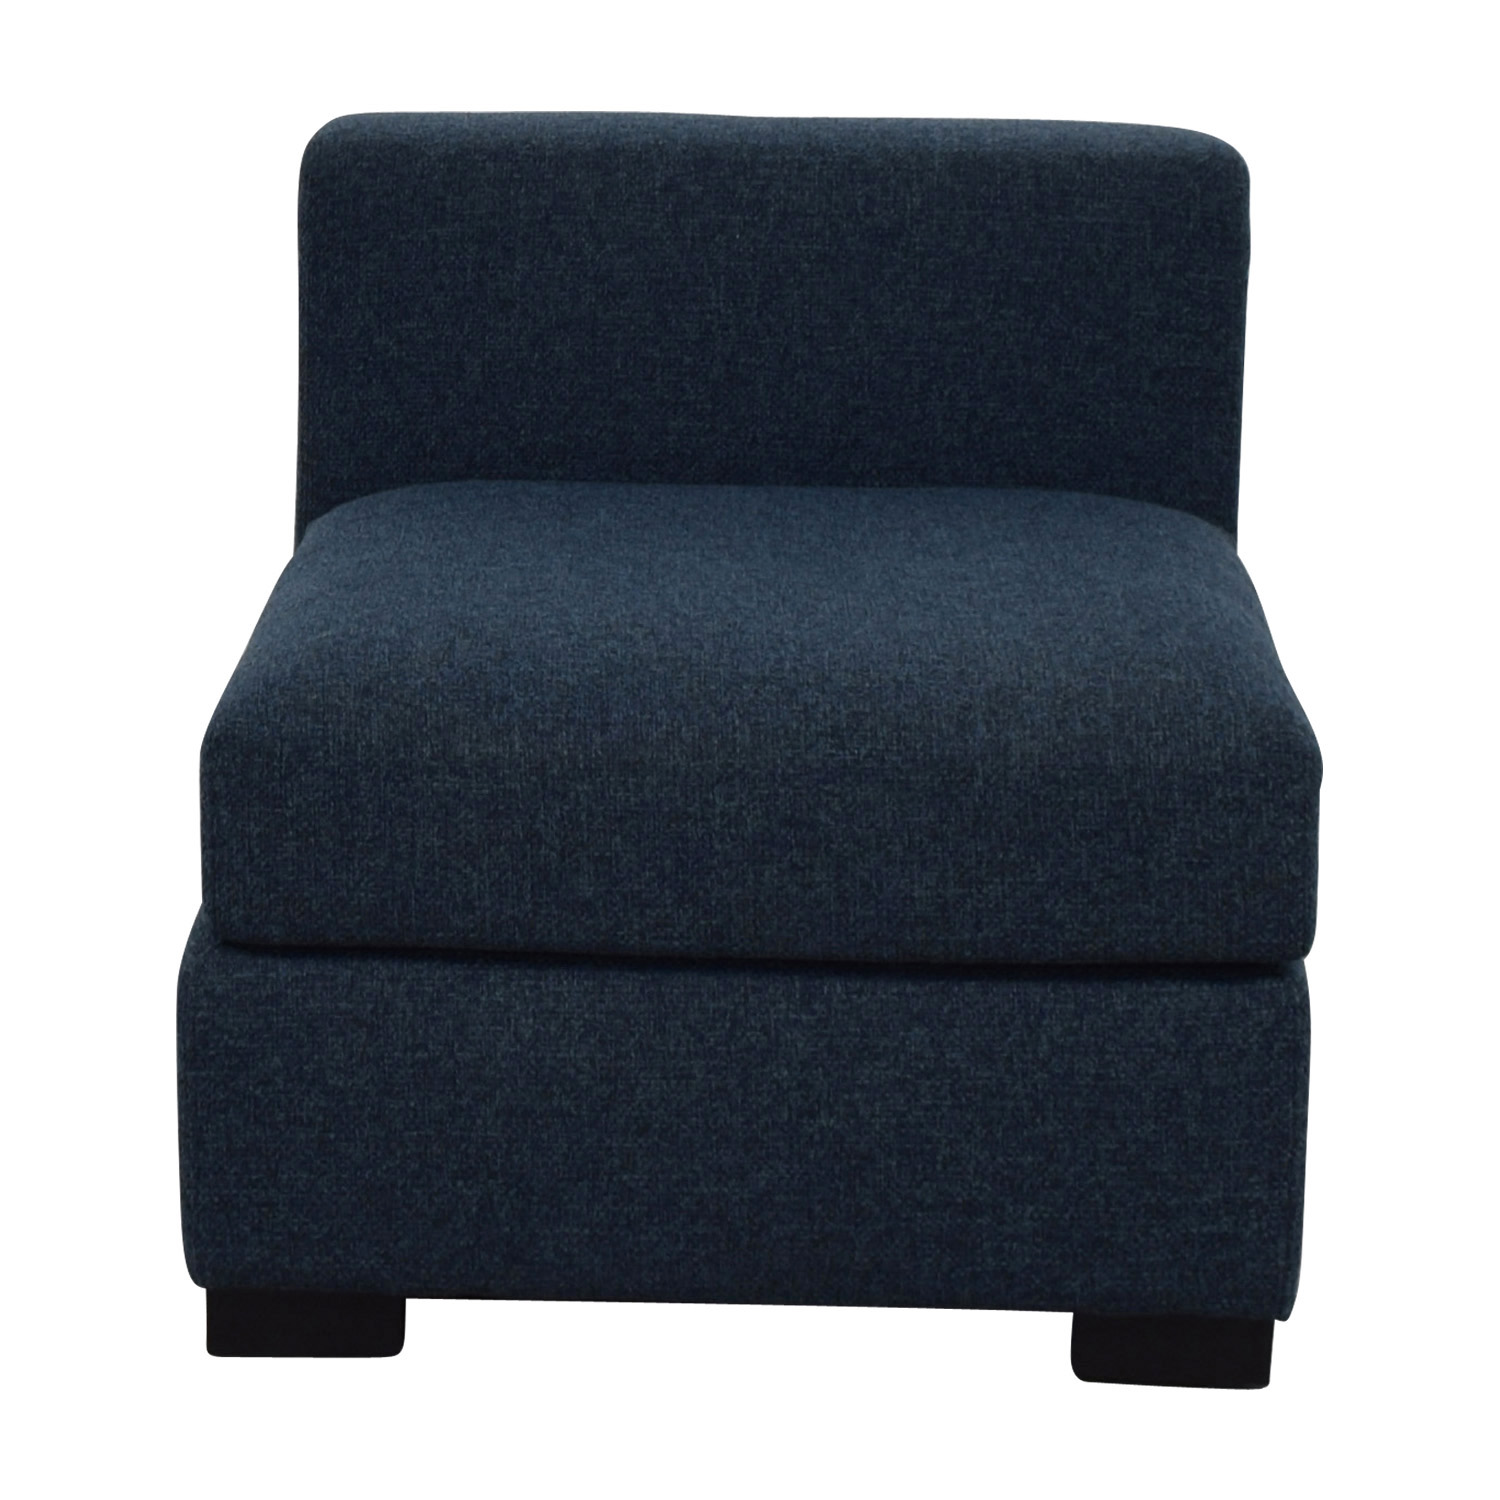 Toby Blue Upholstered Armless Sofa for sale